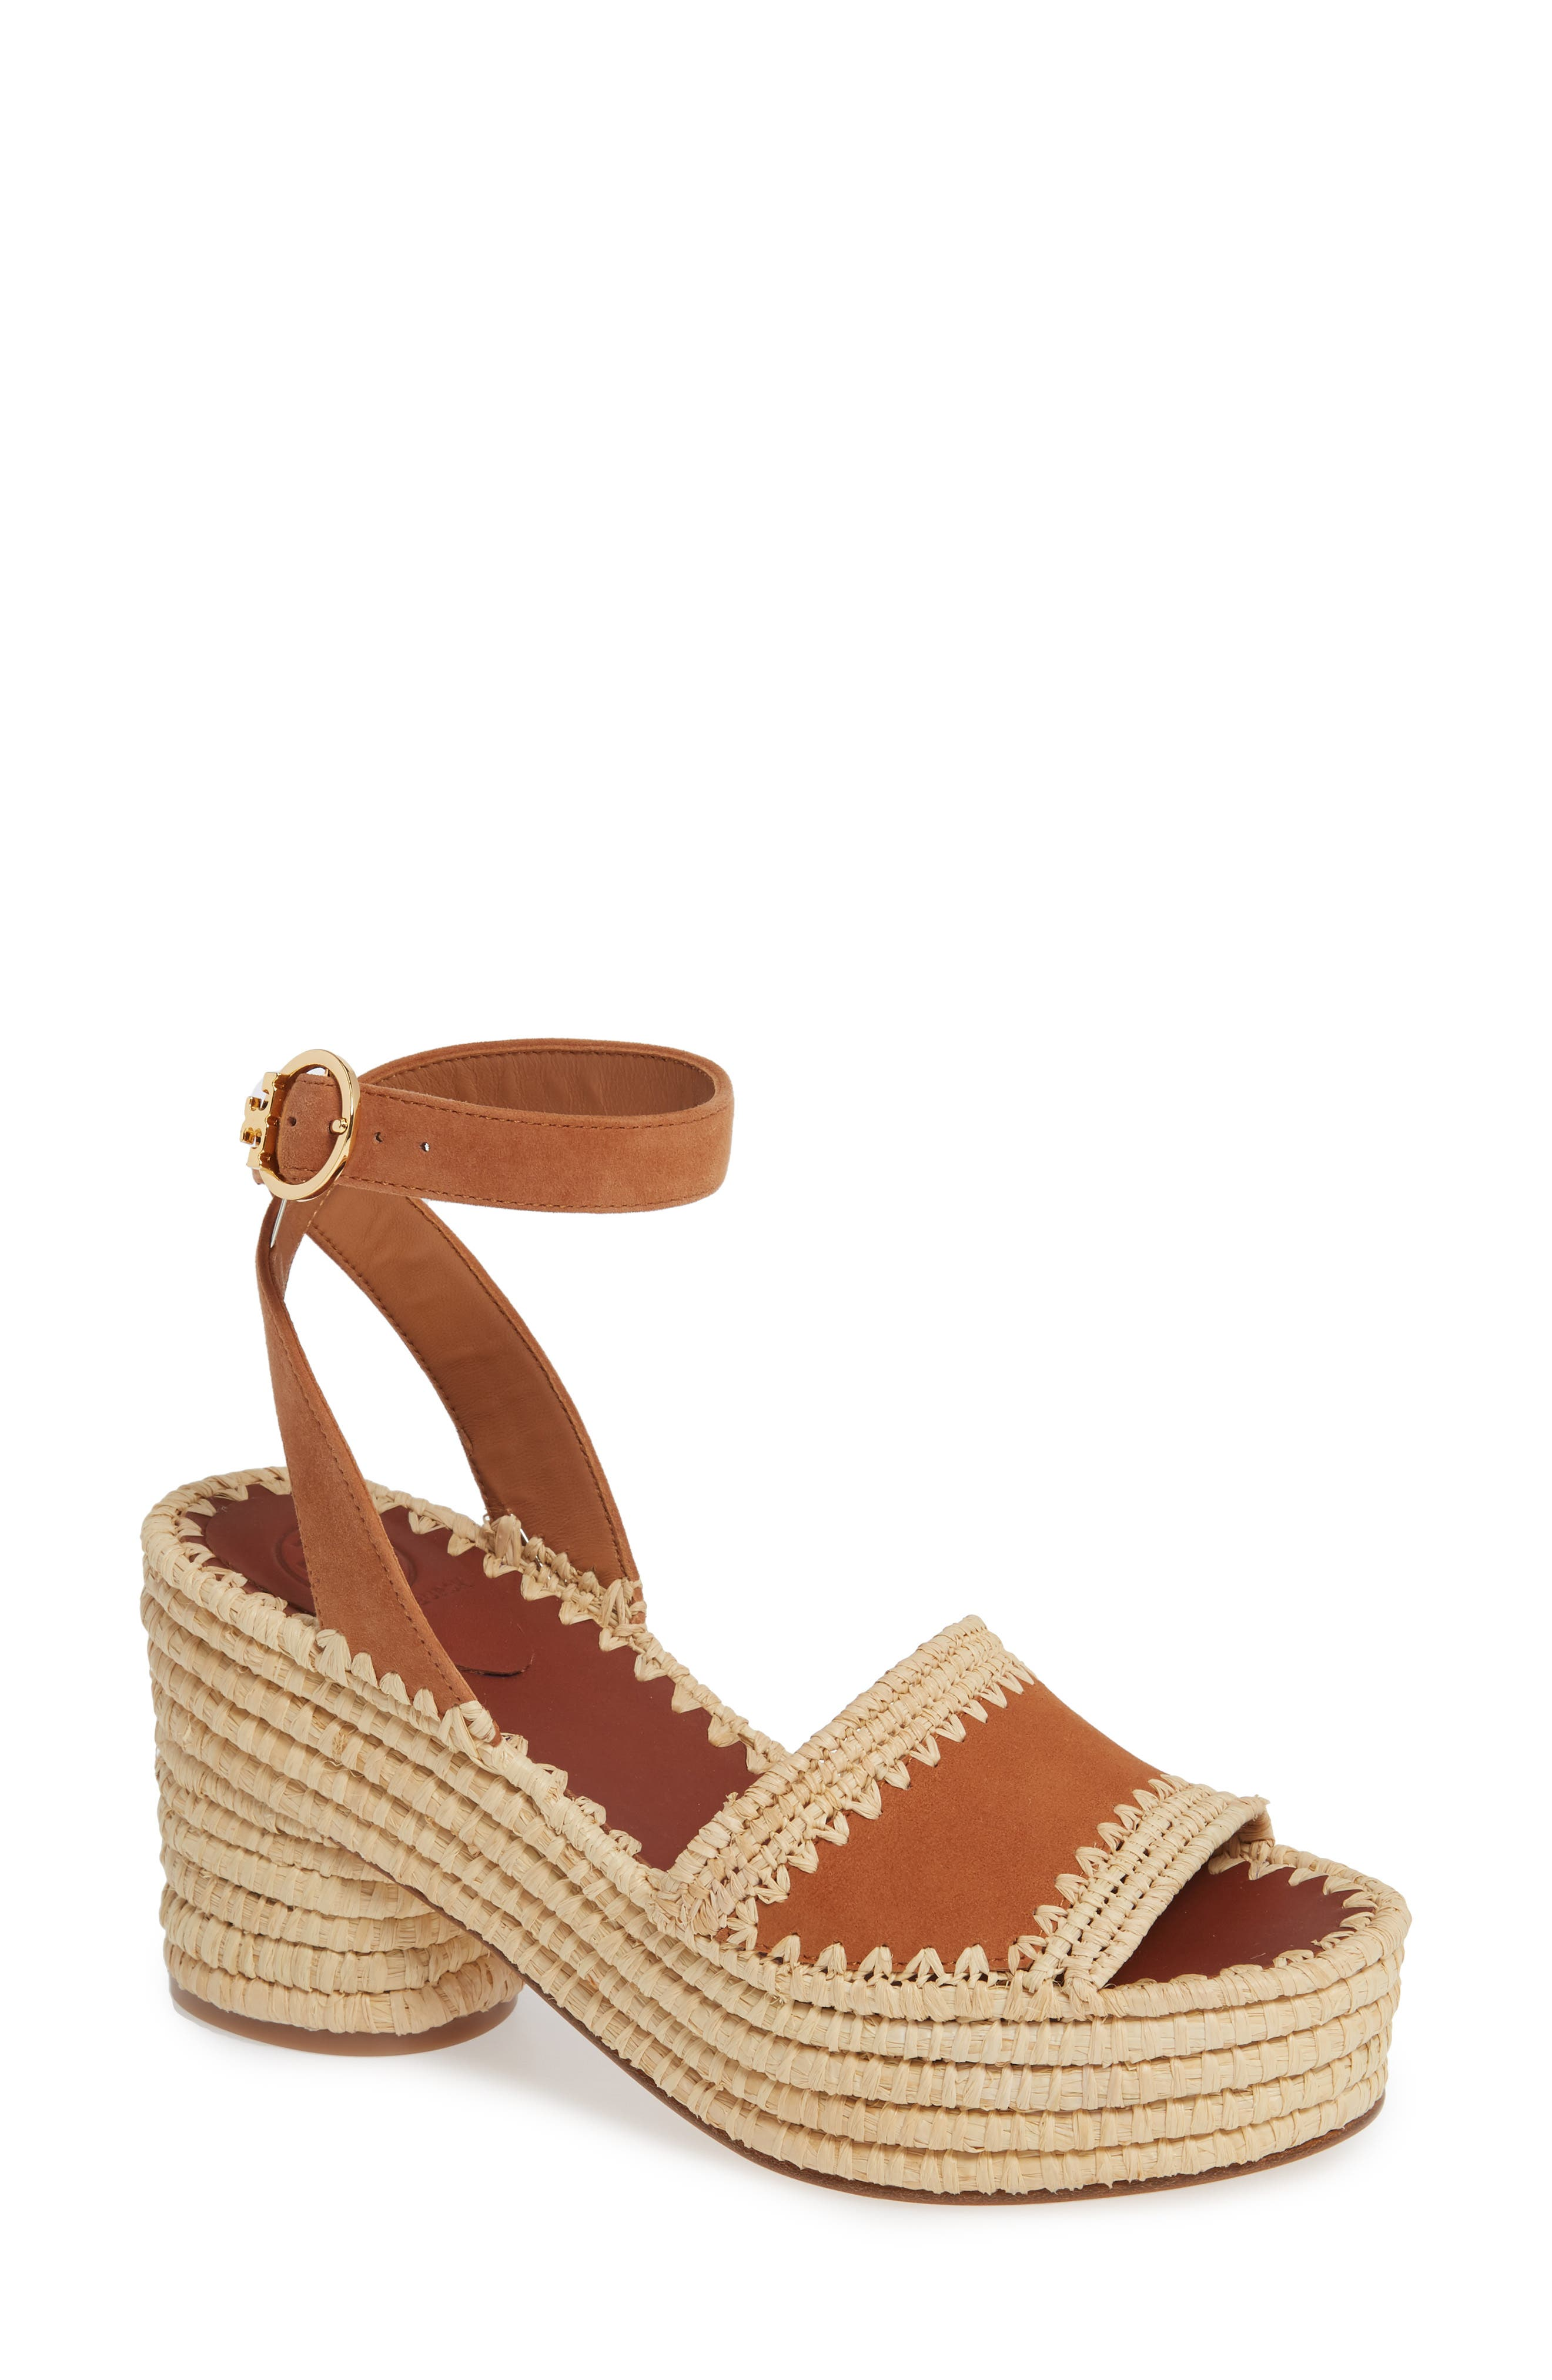 Arianne Platform Ankle Strap Sandal, Main, color, TAN